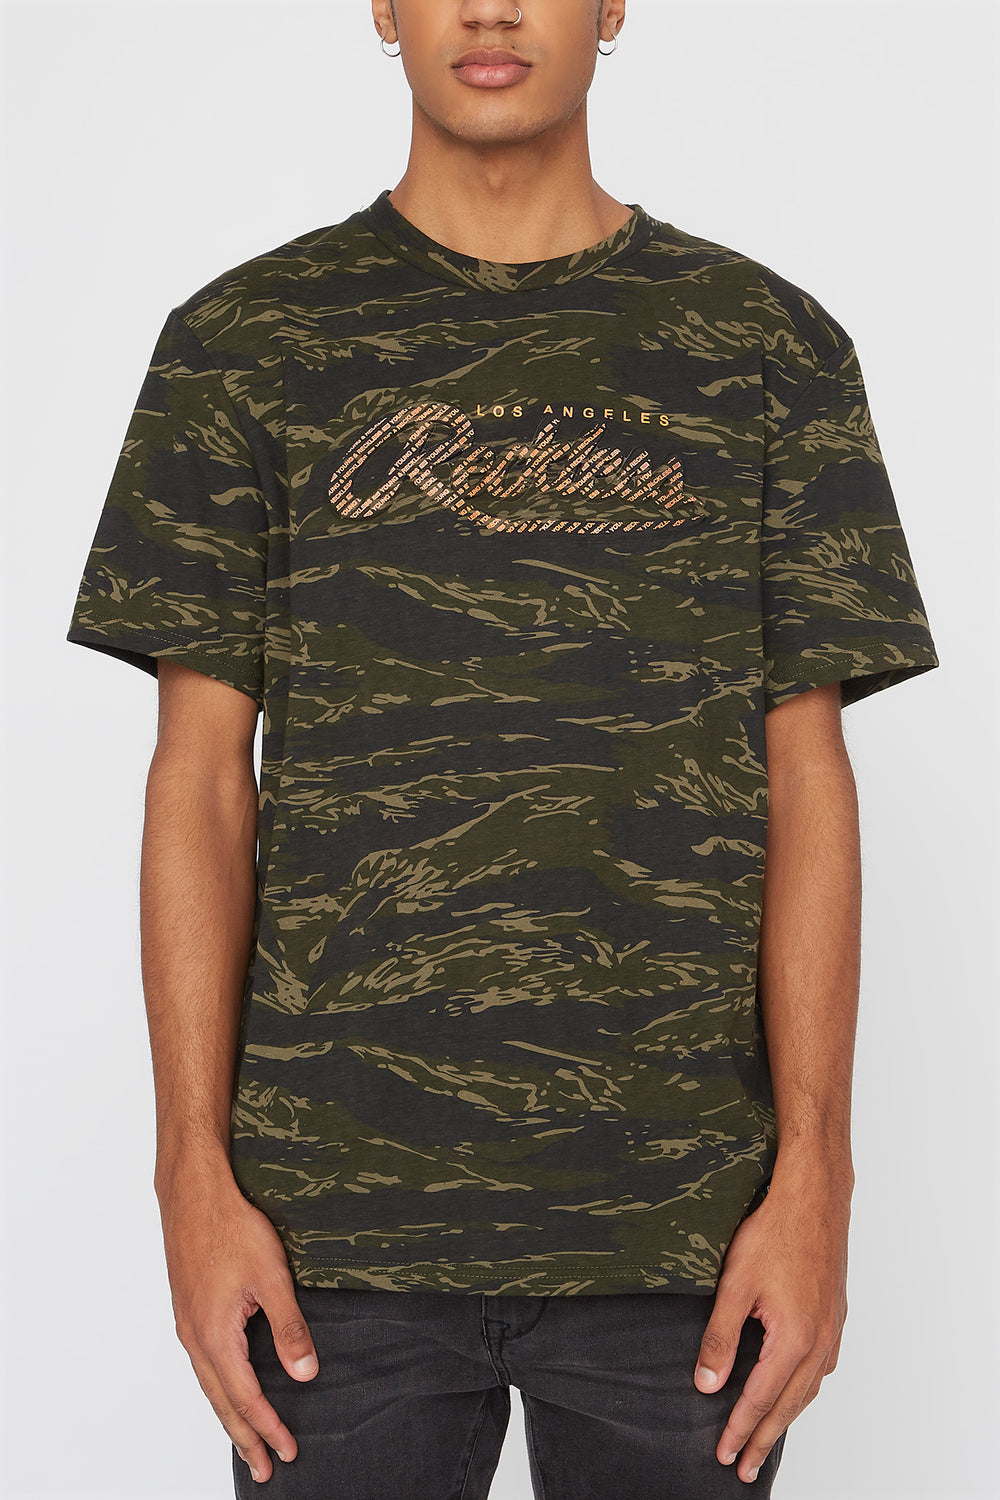 T-Shirt Imprimé Camouflage Et Fluo Young & Reckless Homme Camoufle